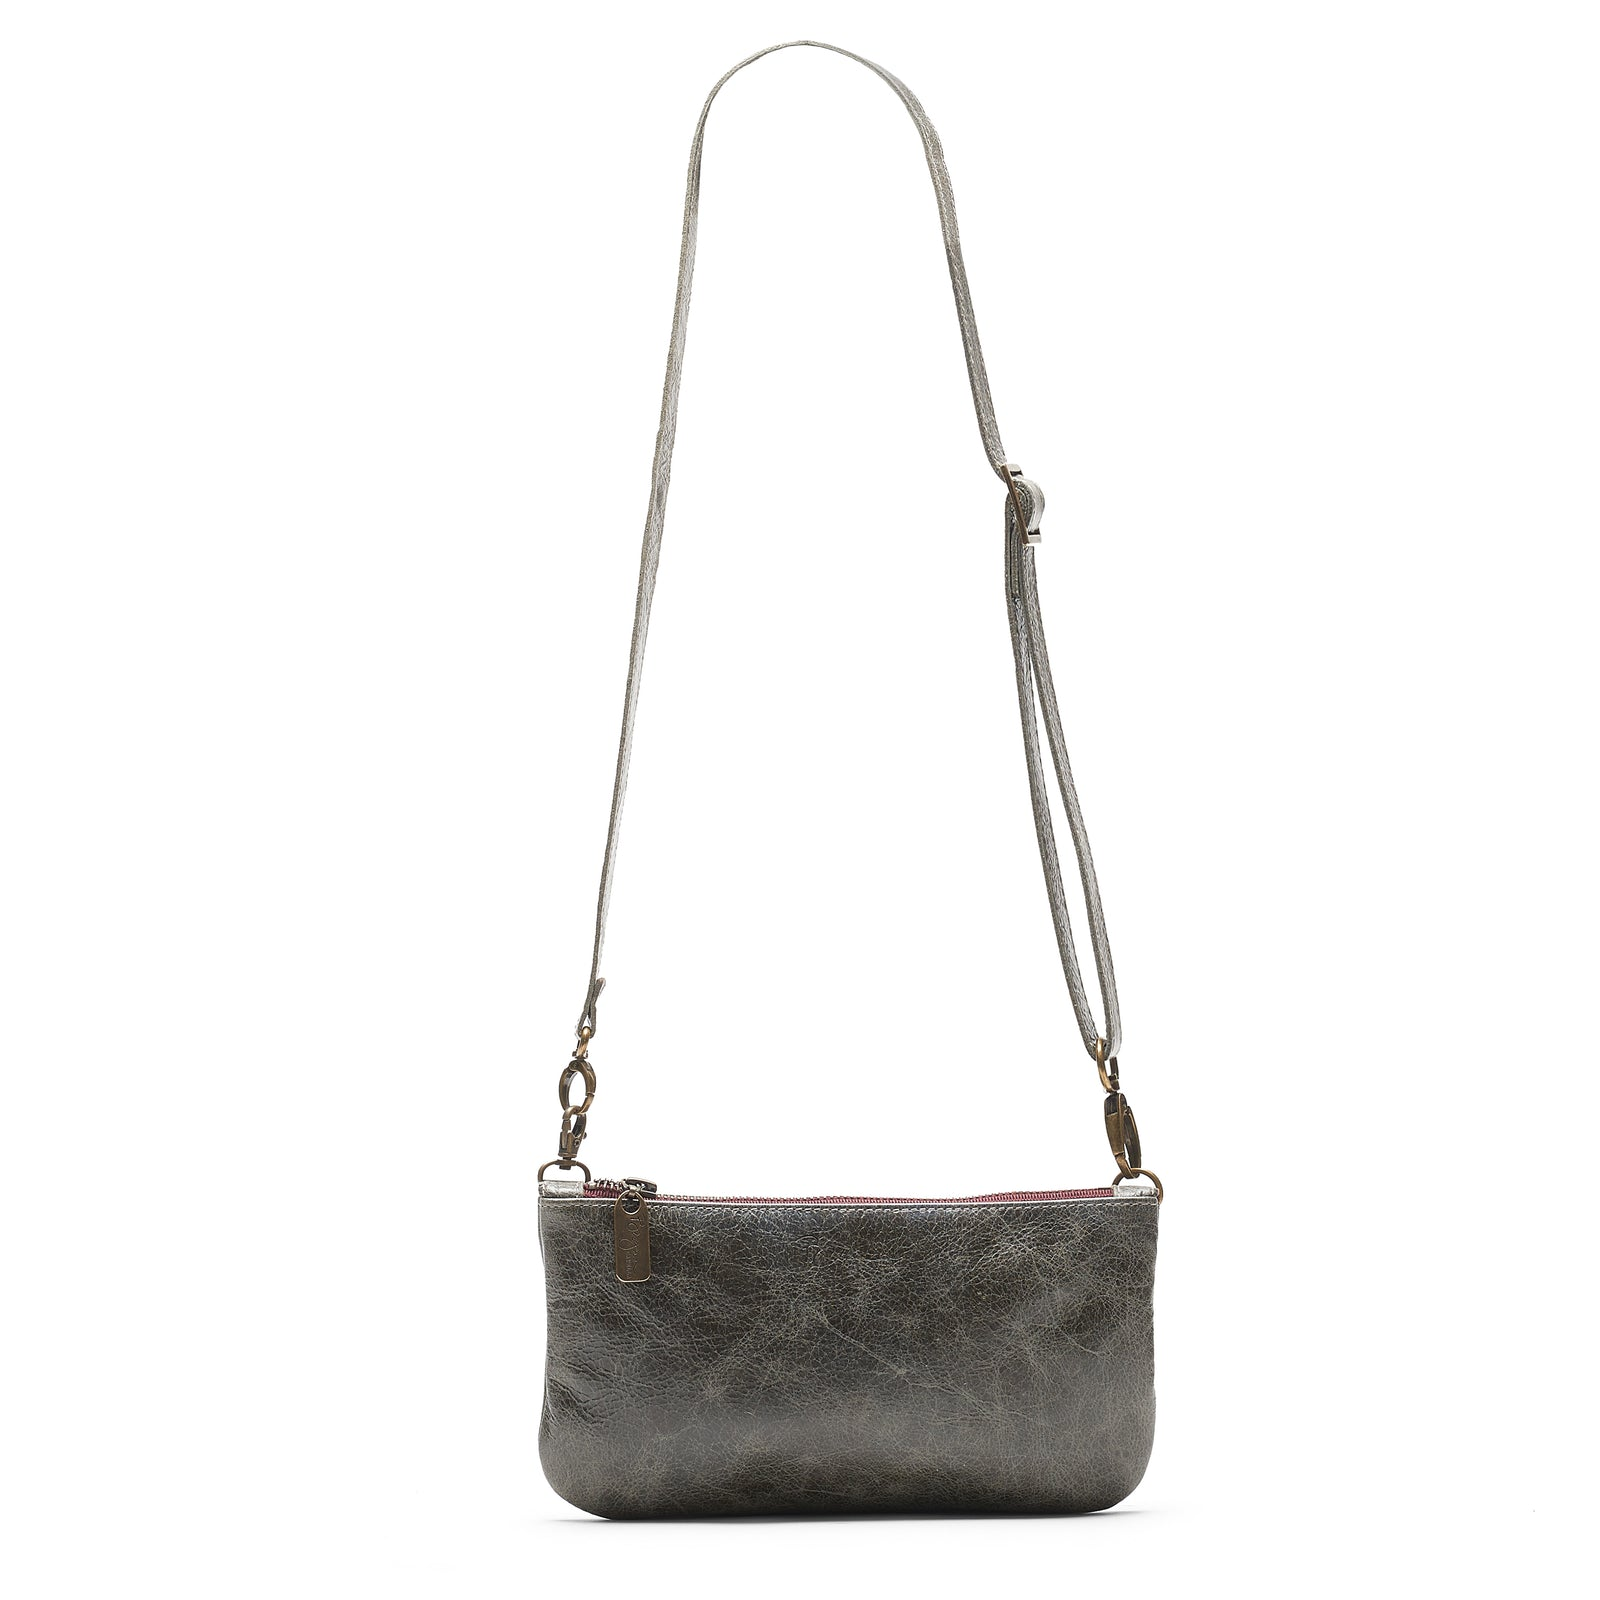 Cher Belt Bag / Crossbody - River Rock - Brynn Capella, Mini Crossbody